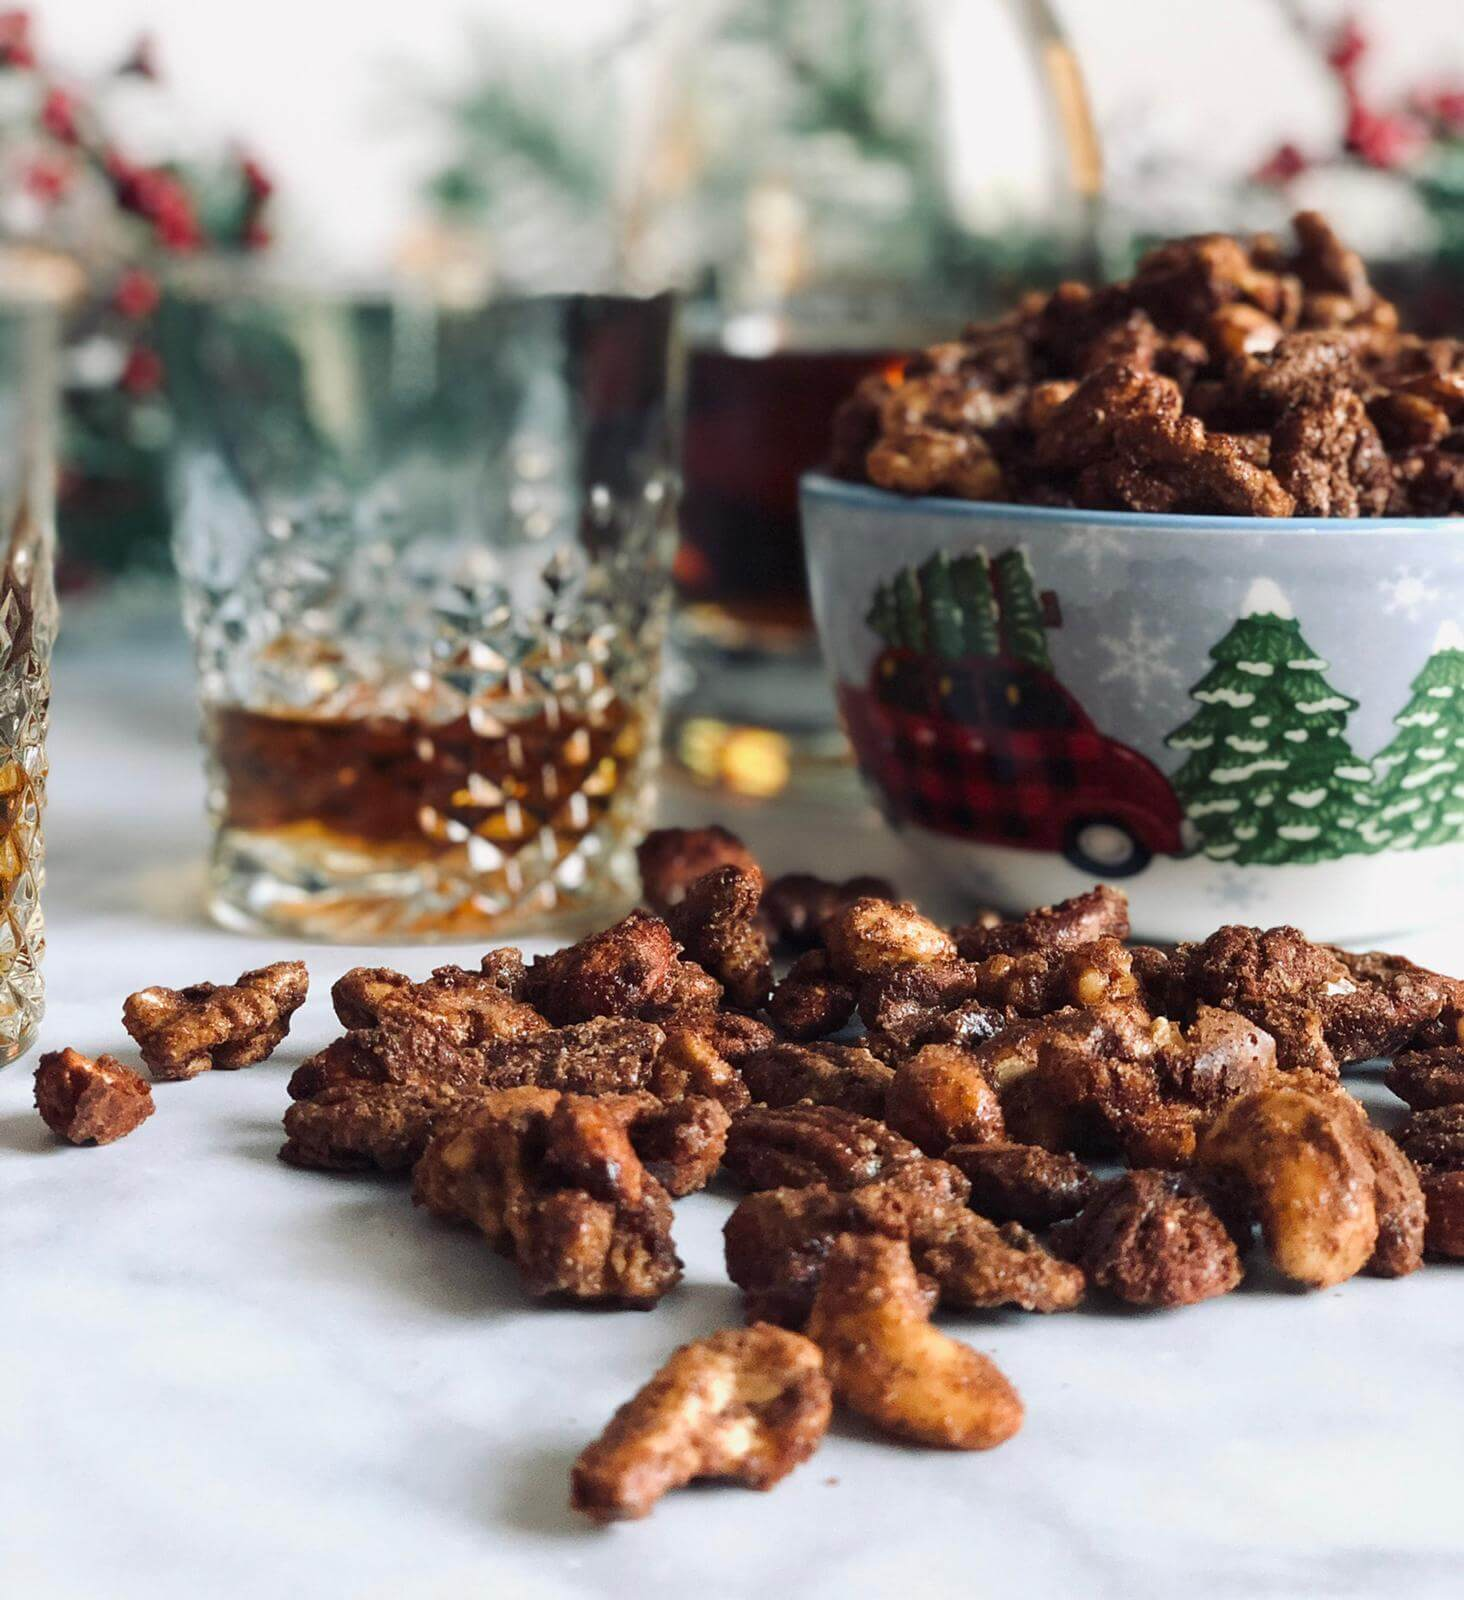 Spiced Nuts on table with glass